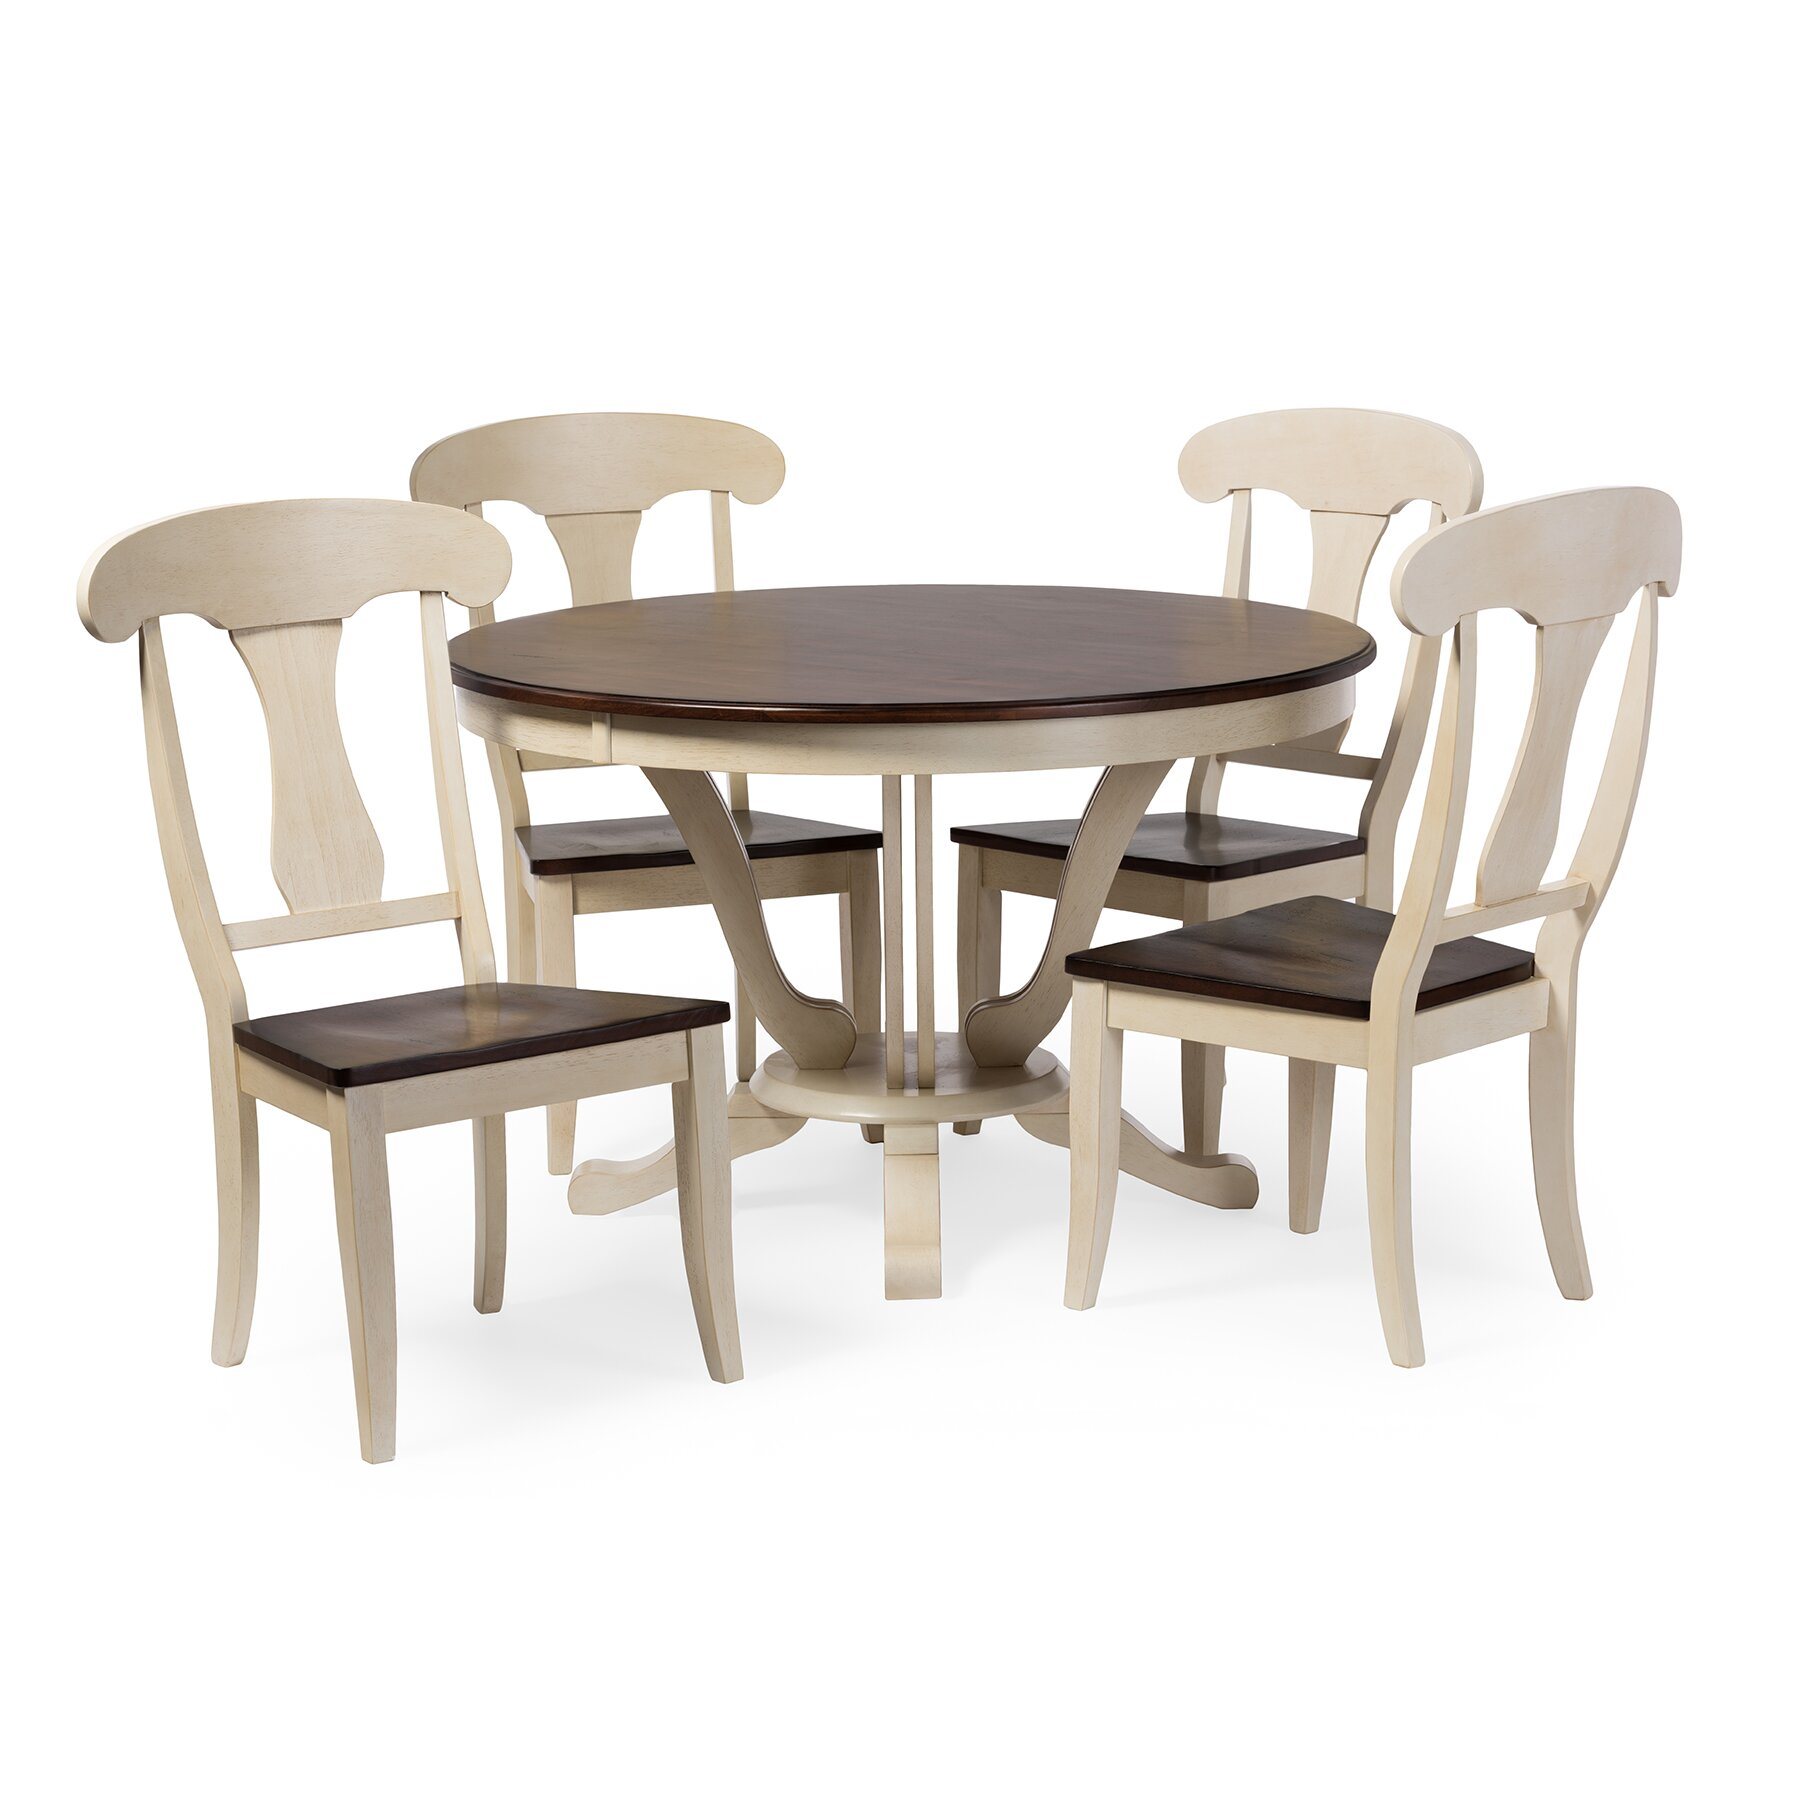 Baxton Studio Dining Table Wayfair